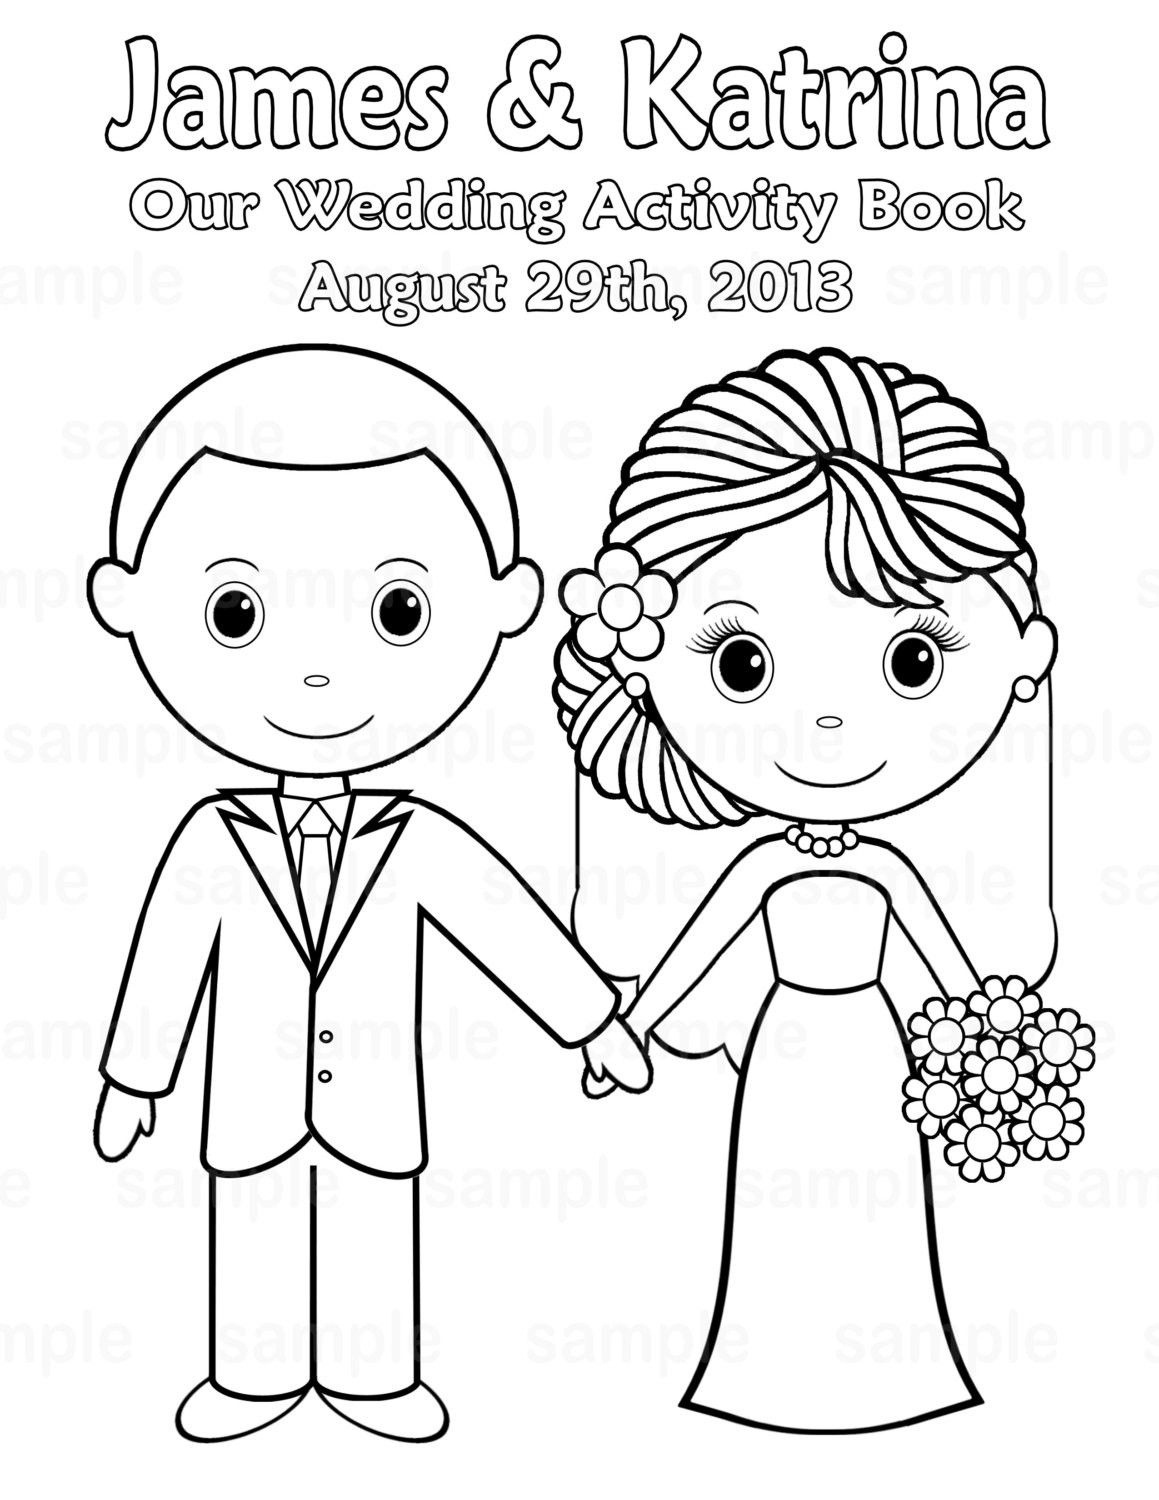 Free Printable Wedding Coloring Pages | Free Printable Wedding - Free Printable Personalized Wedding Coloring Book